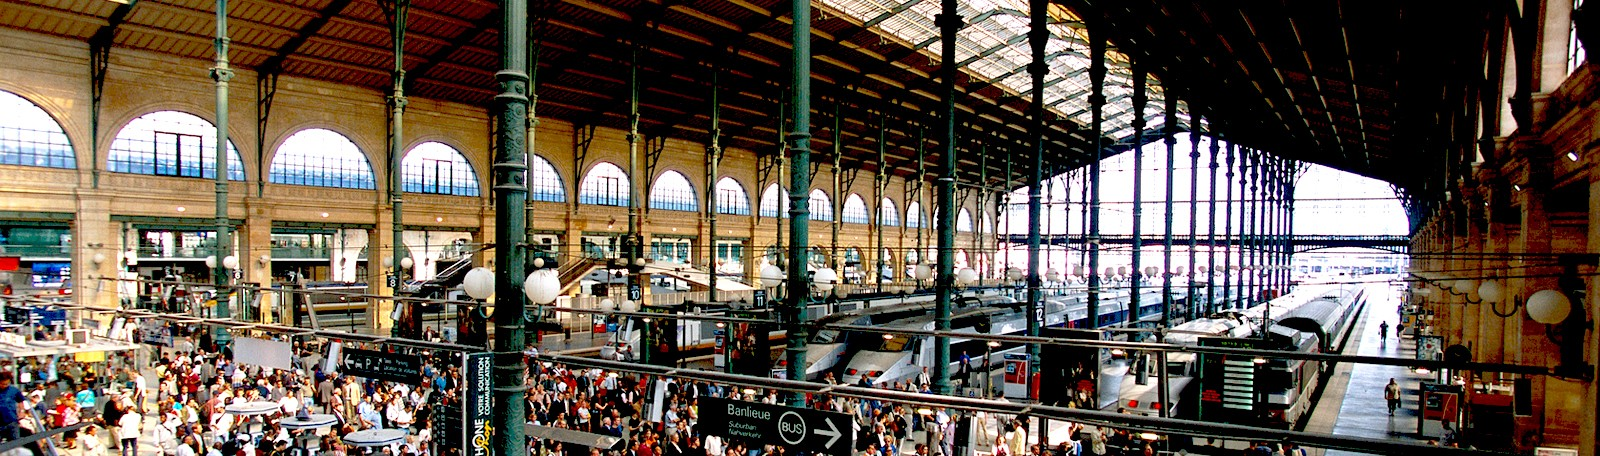 Gare de Lyon train station - Stations, public transport - Paris